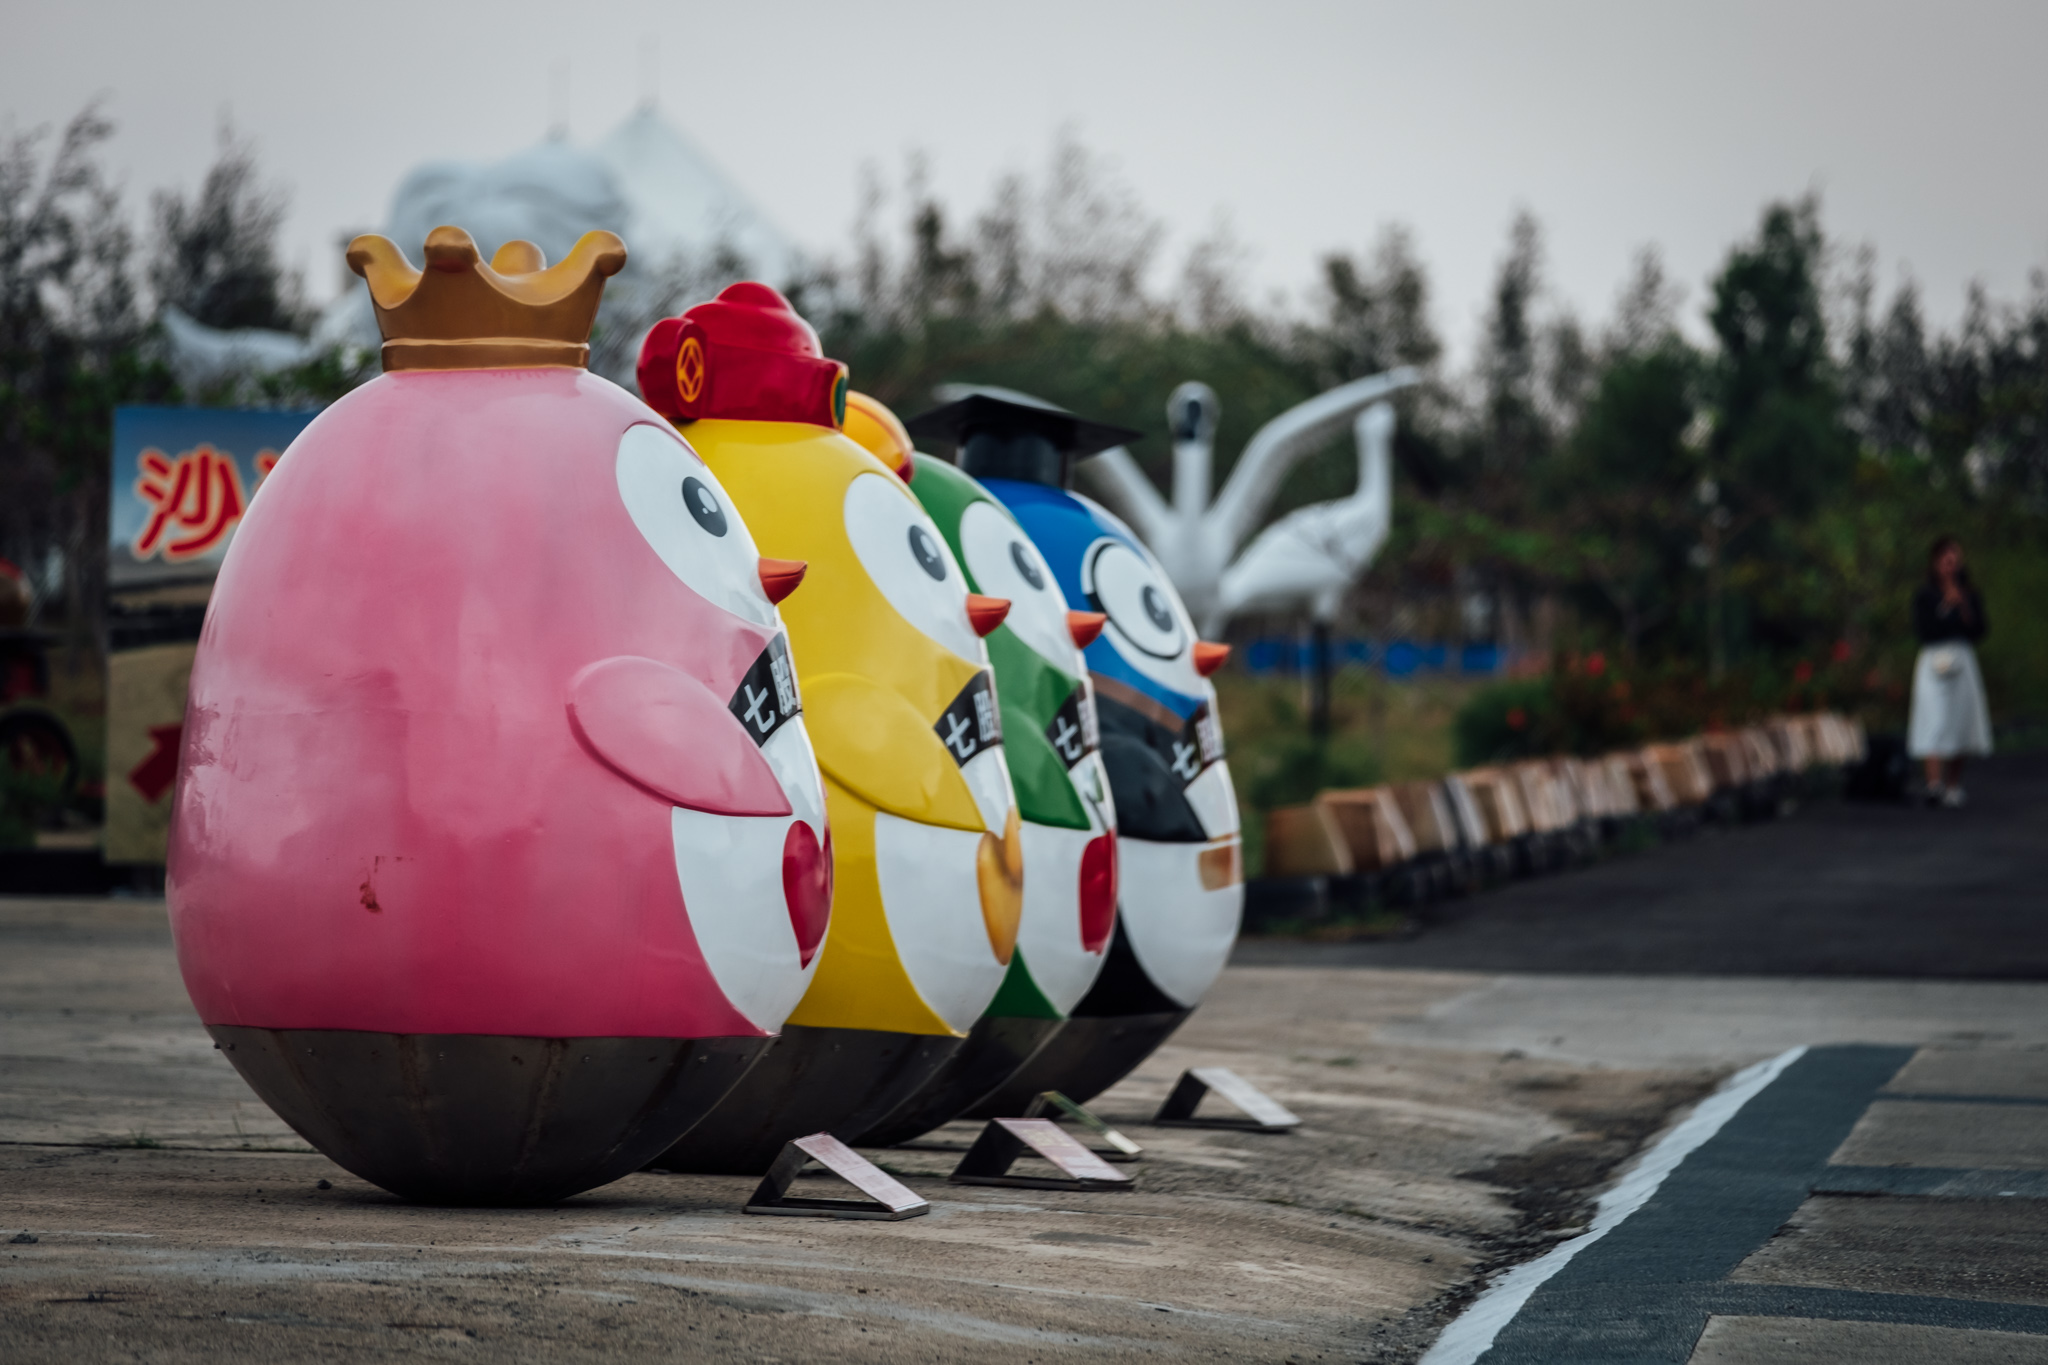 Penguins at the entrance of the amusement park at of Qigu Salt Mountain - Fujifilm X-H1 / XF50-140mmF2.8